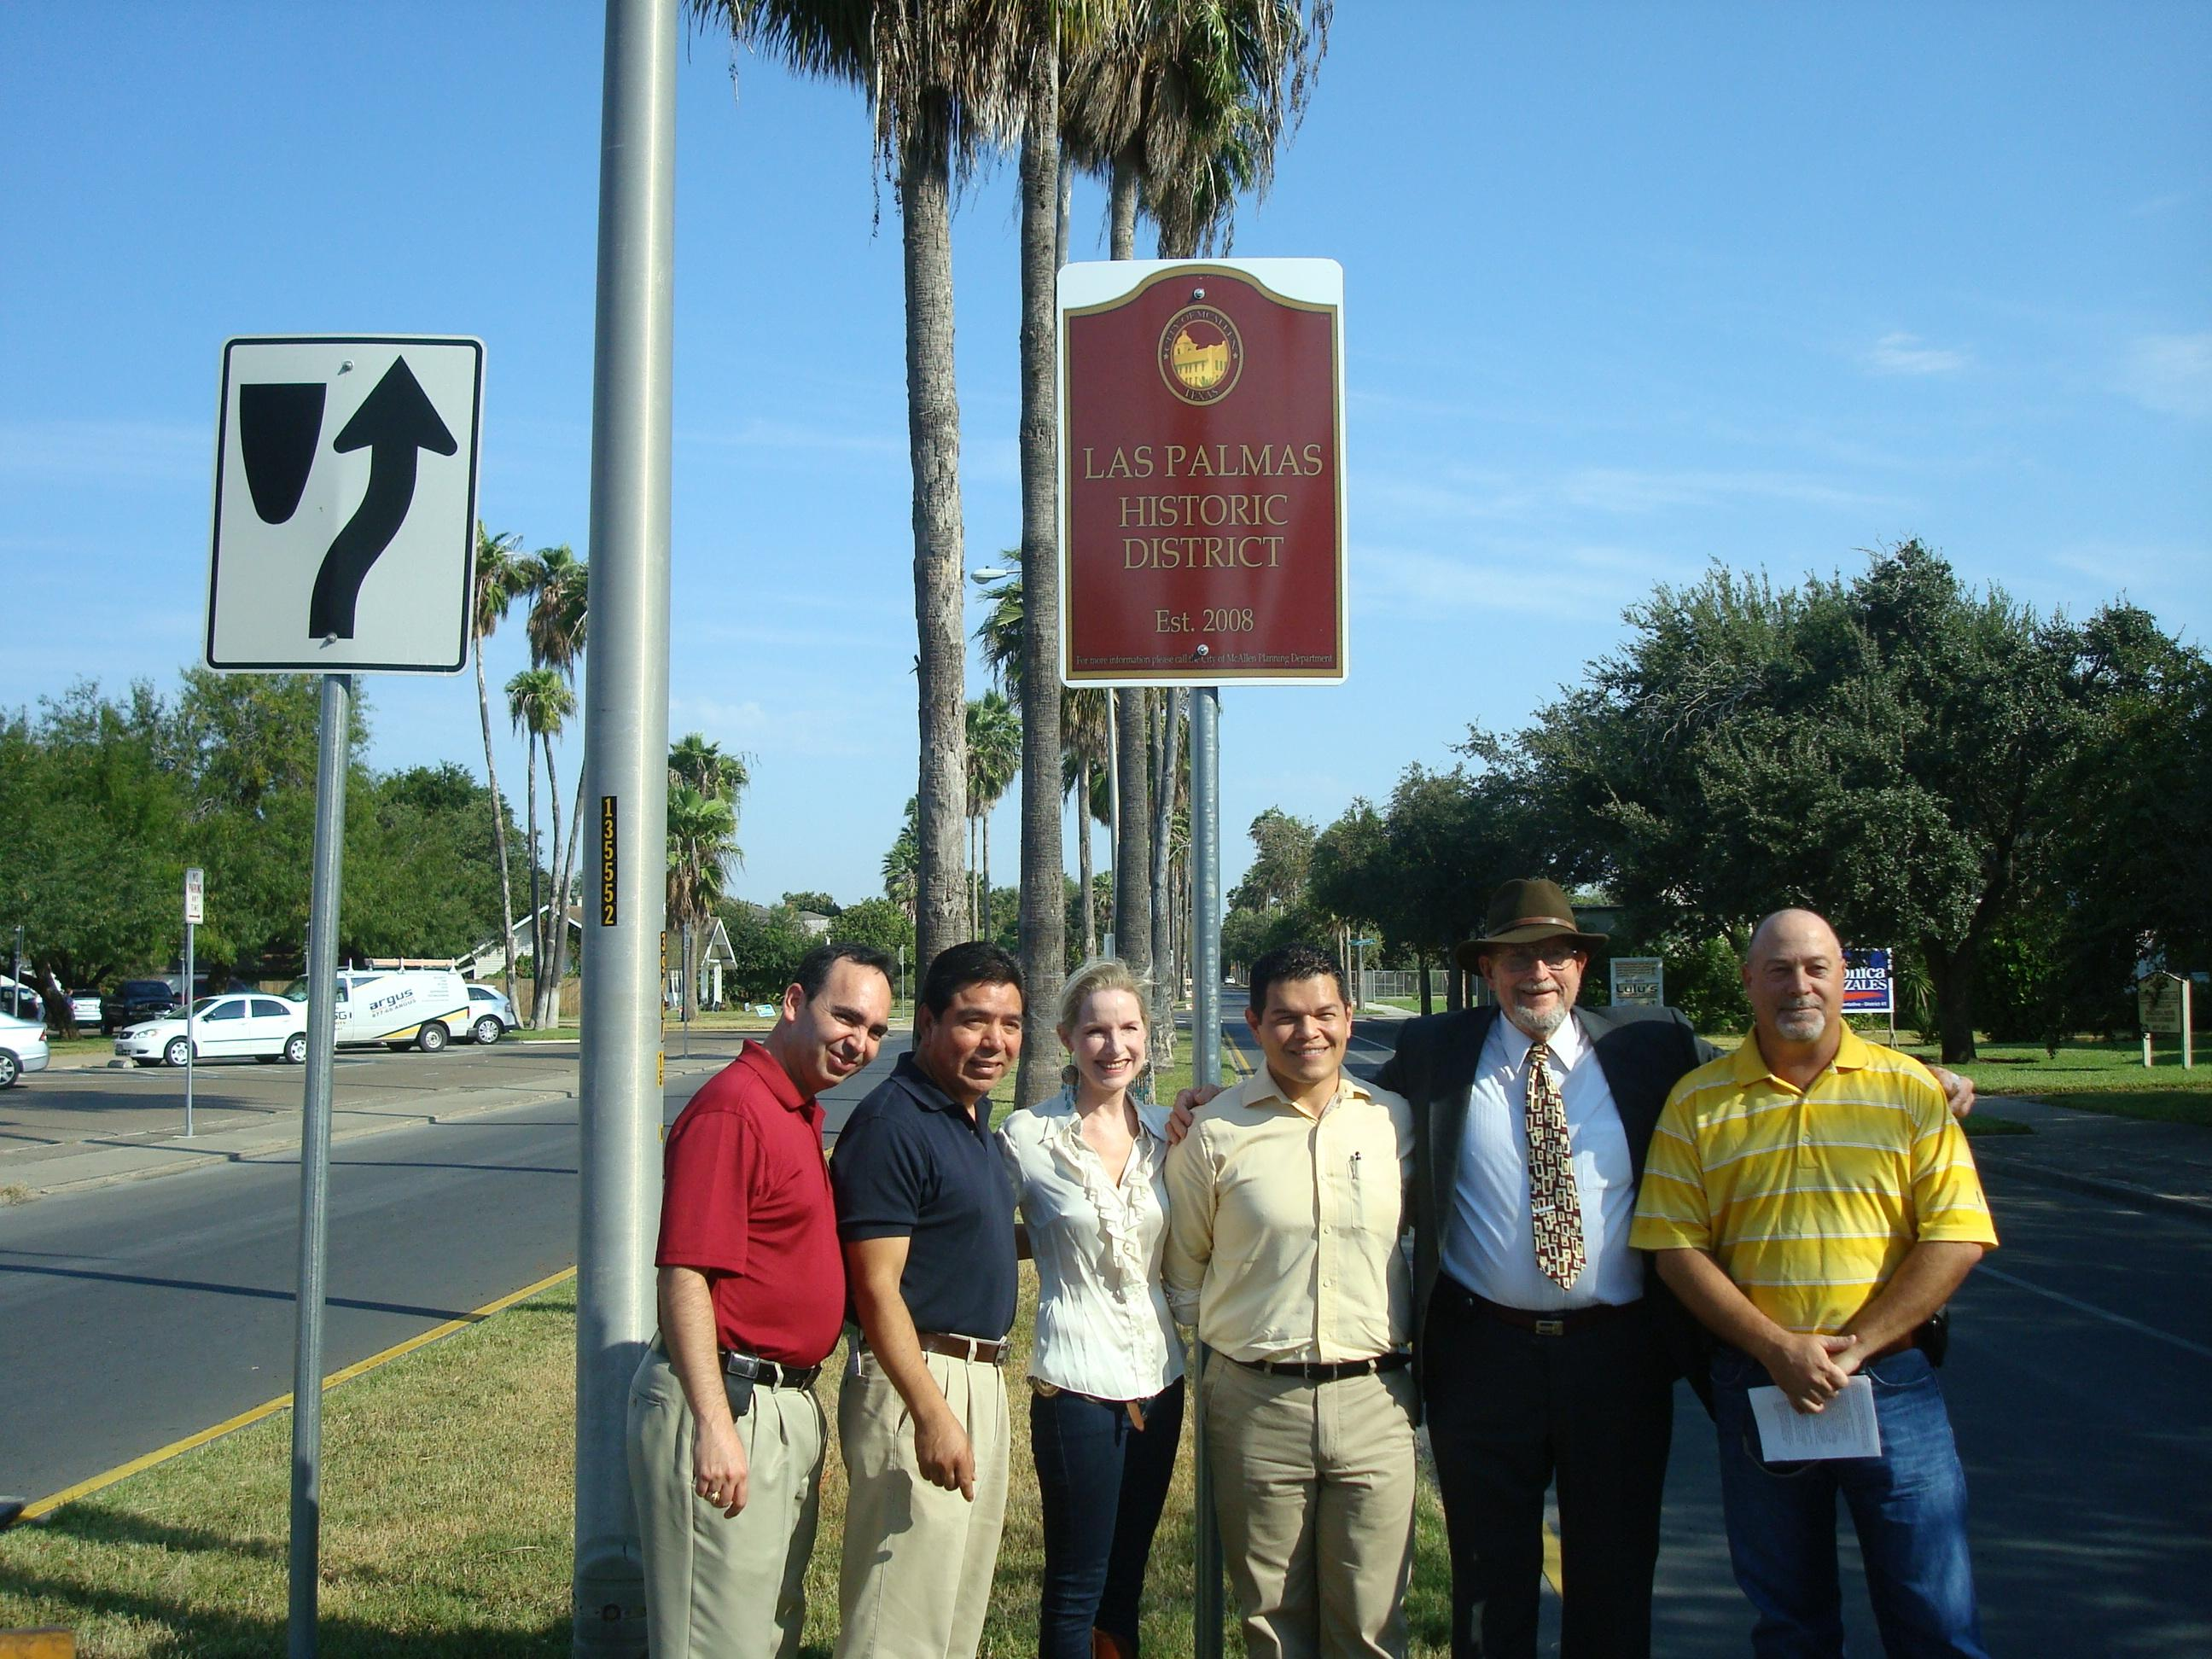 Unveiling of sign announcing the Las Palmas Historic District